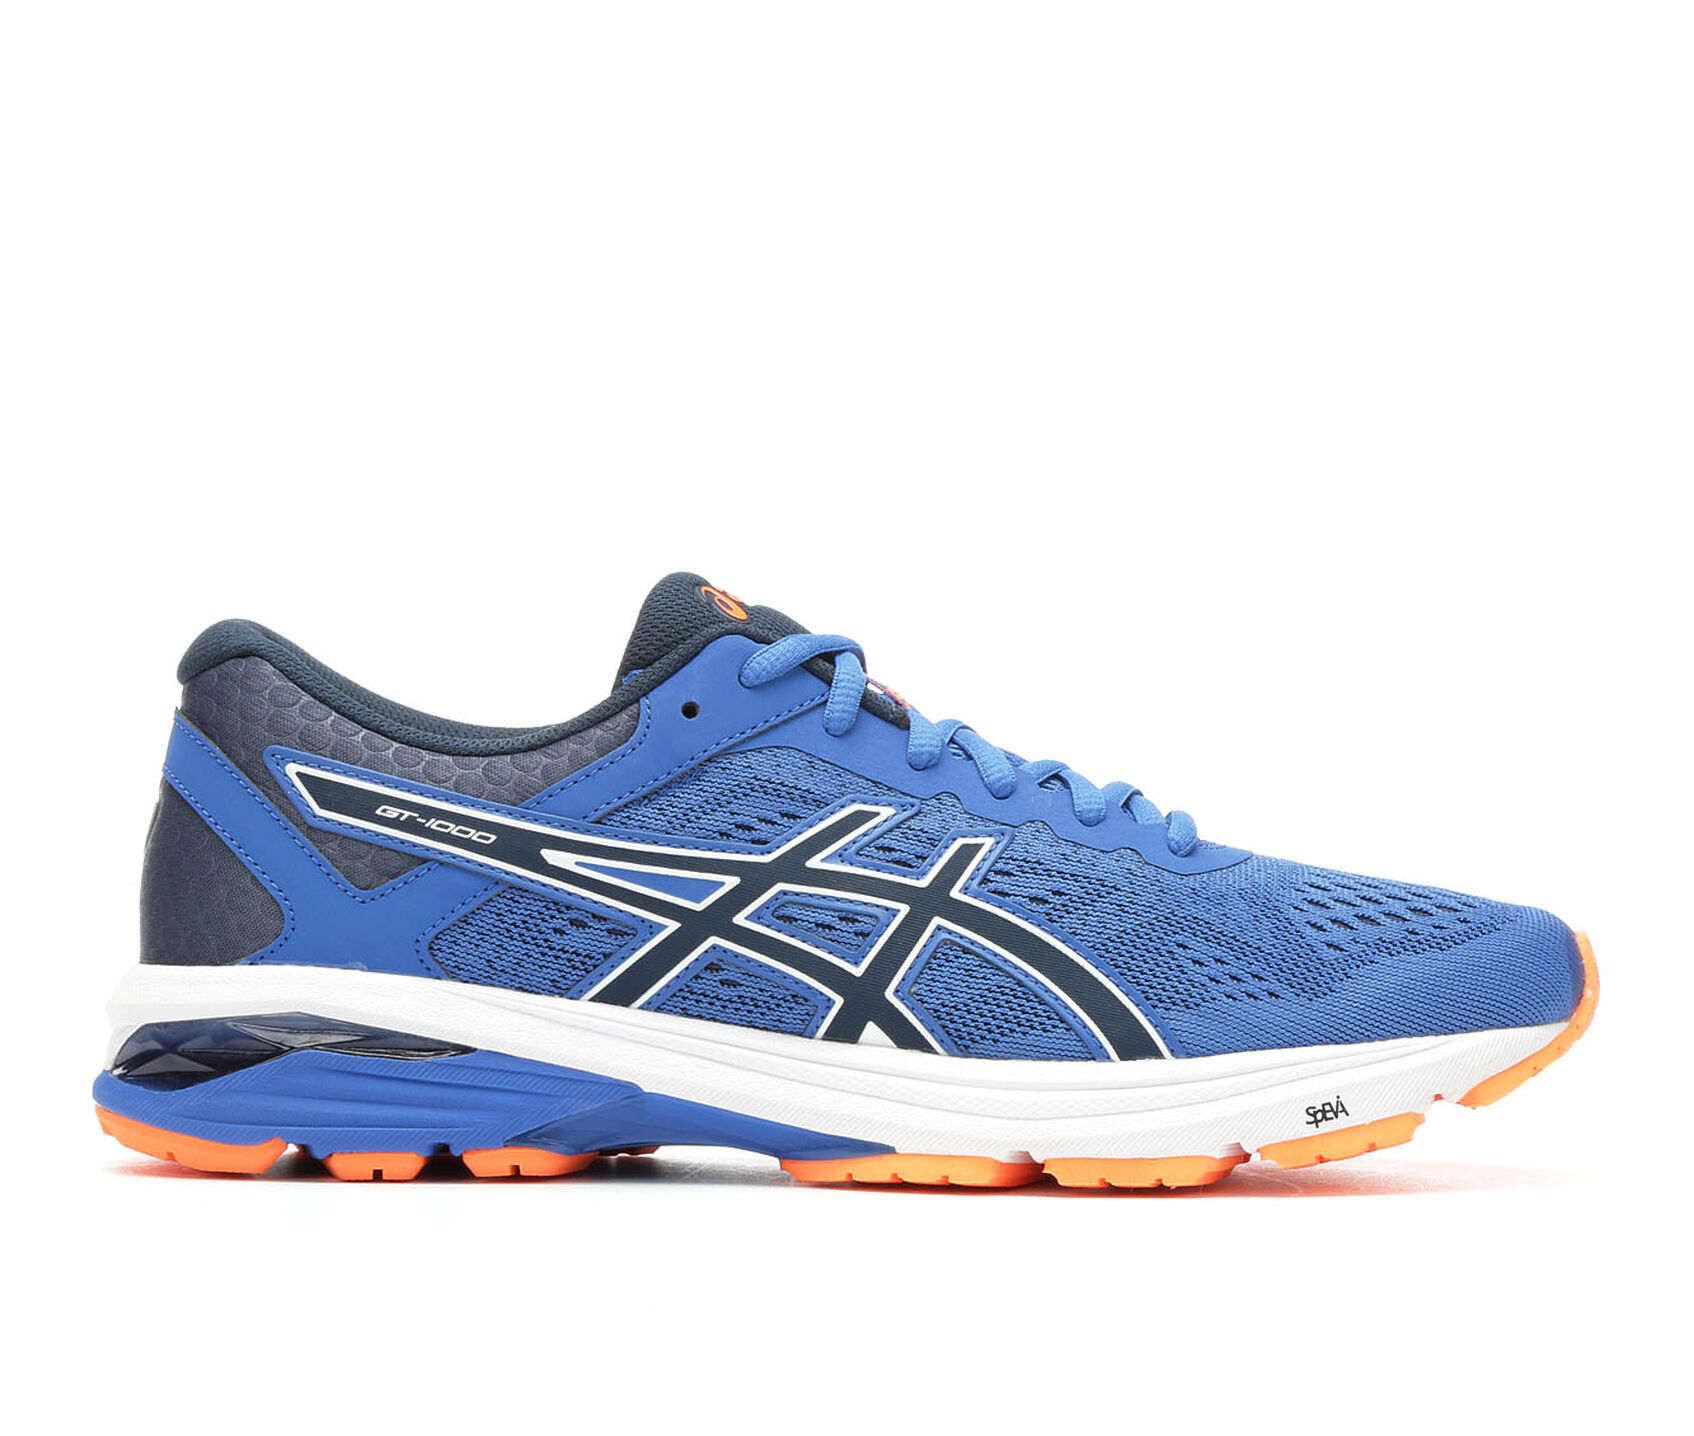 96ad76d8 Men's ASICS GT 1000 6 Running Shoes